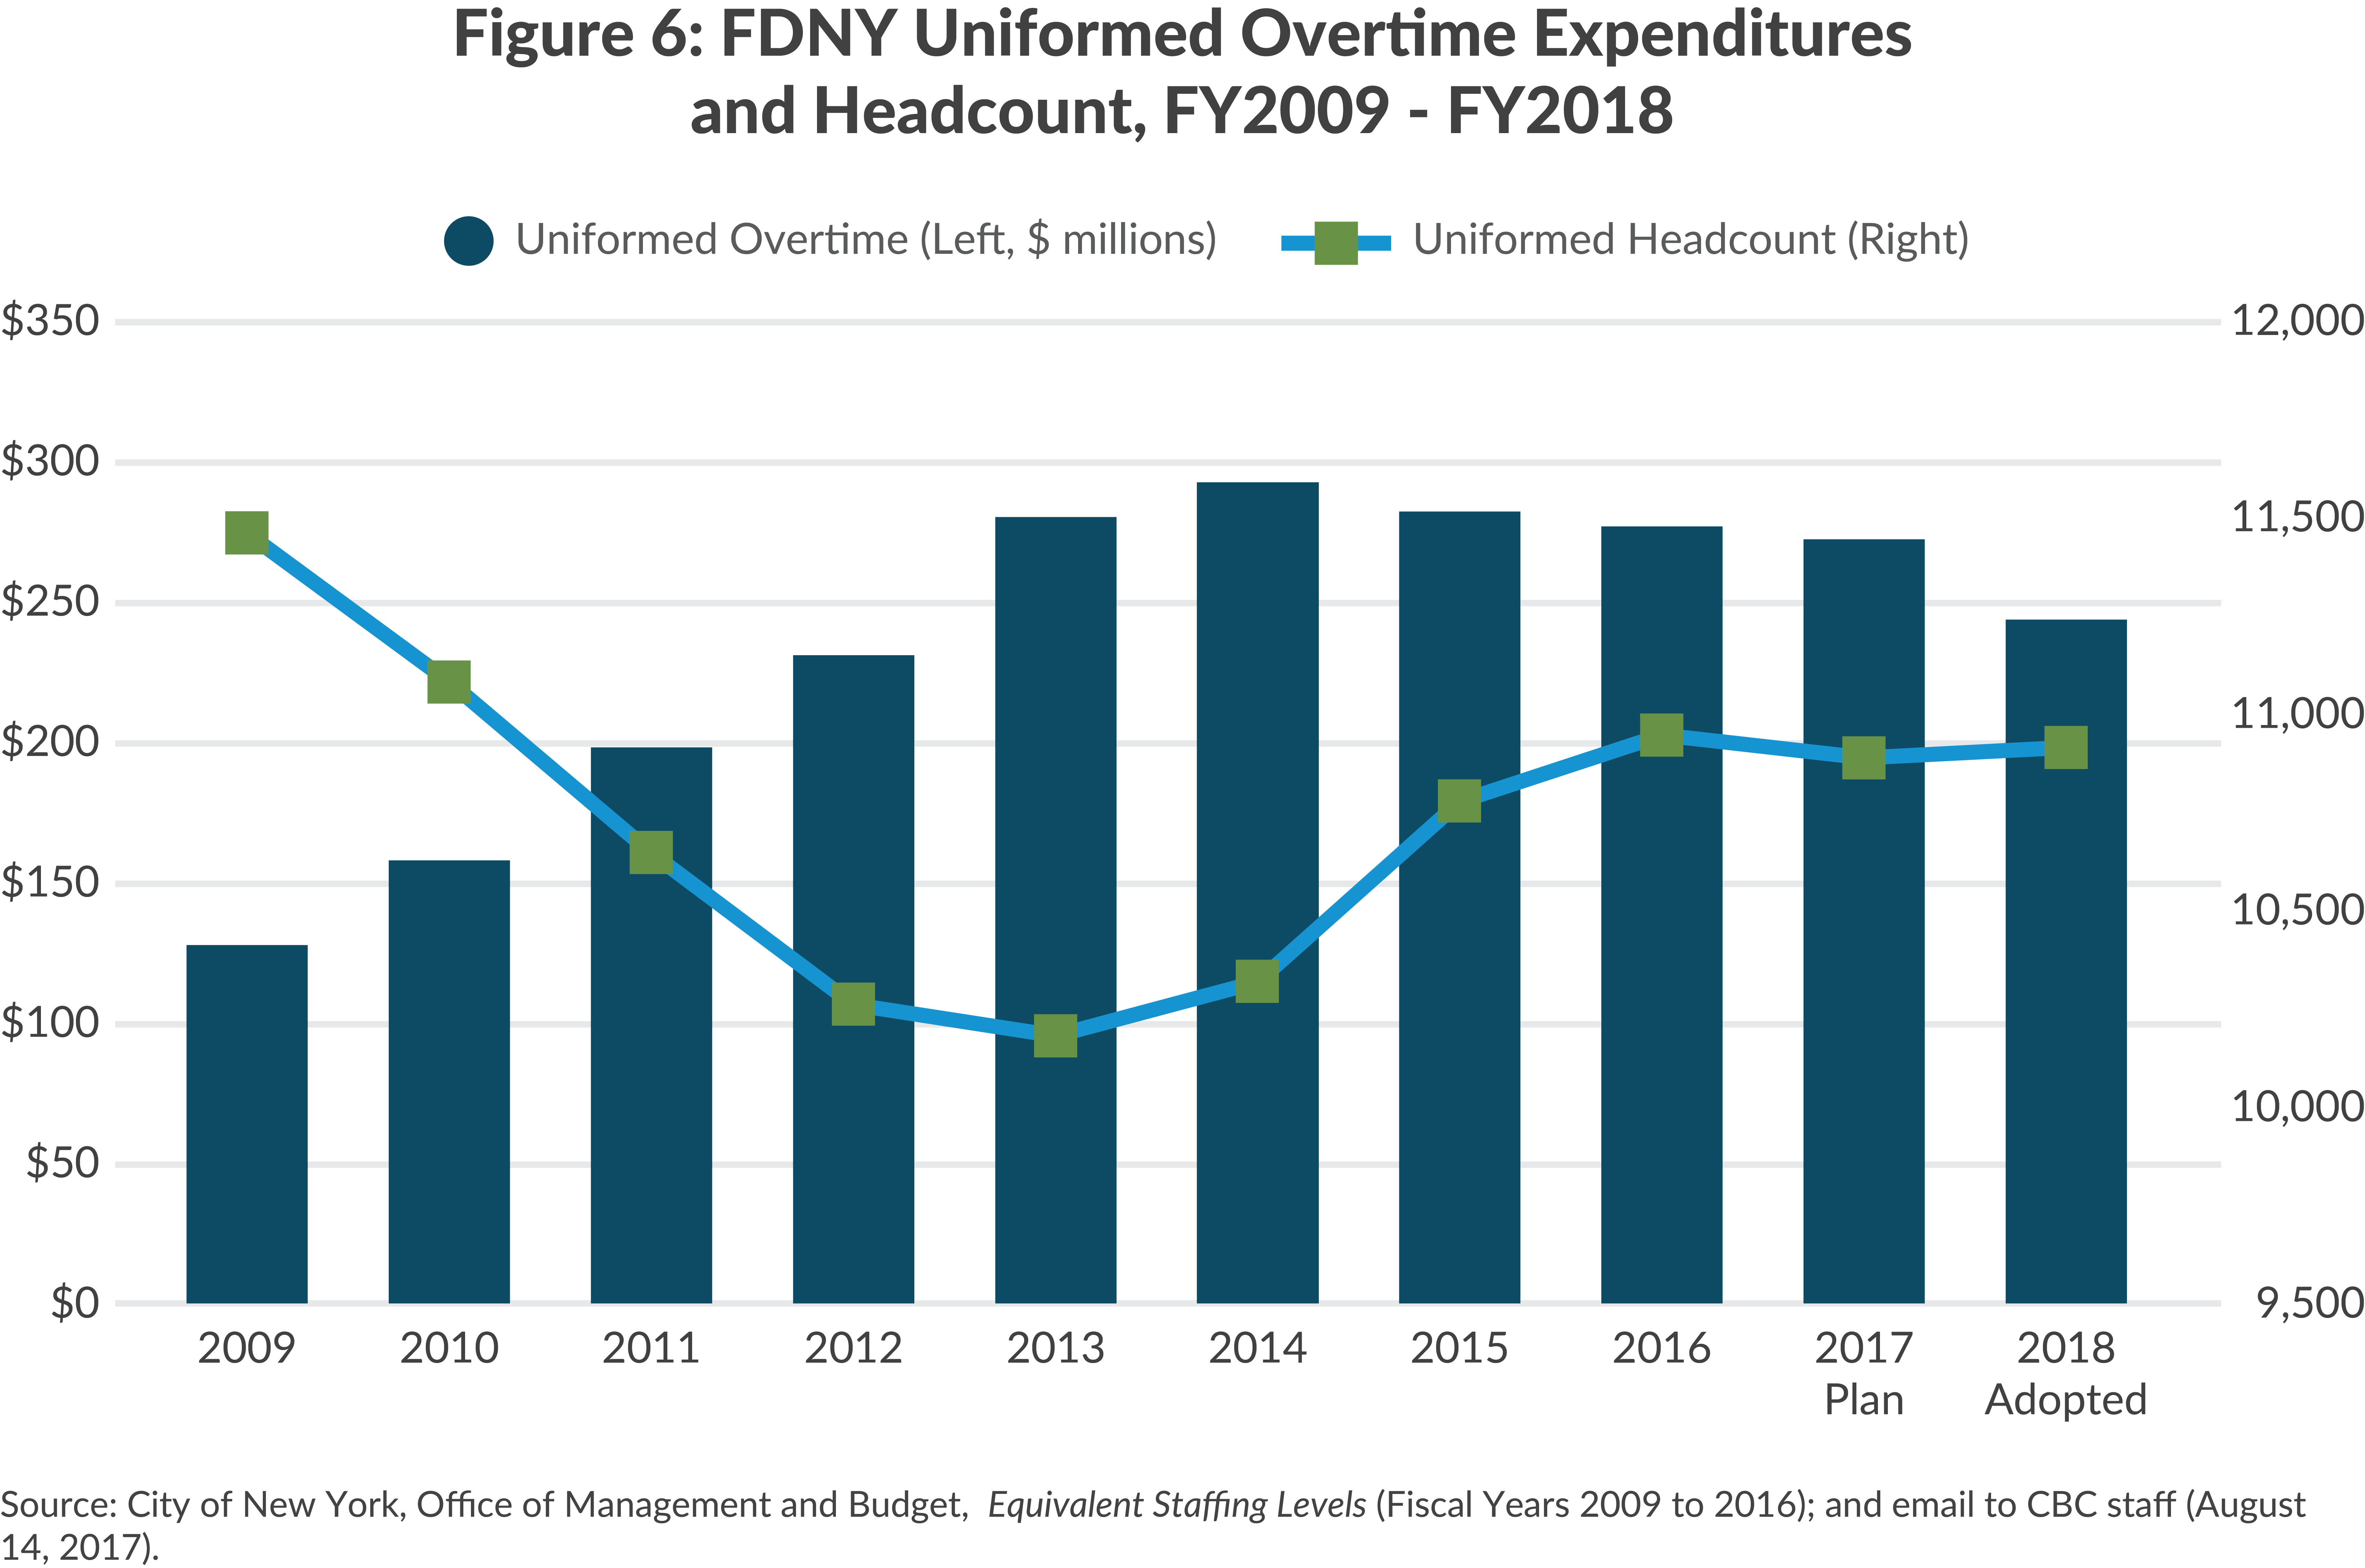 FDNY Overtime and Headcount, FY2009-FY2018